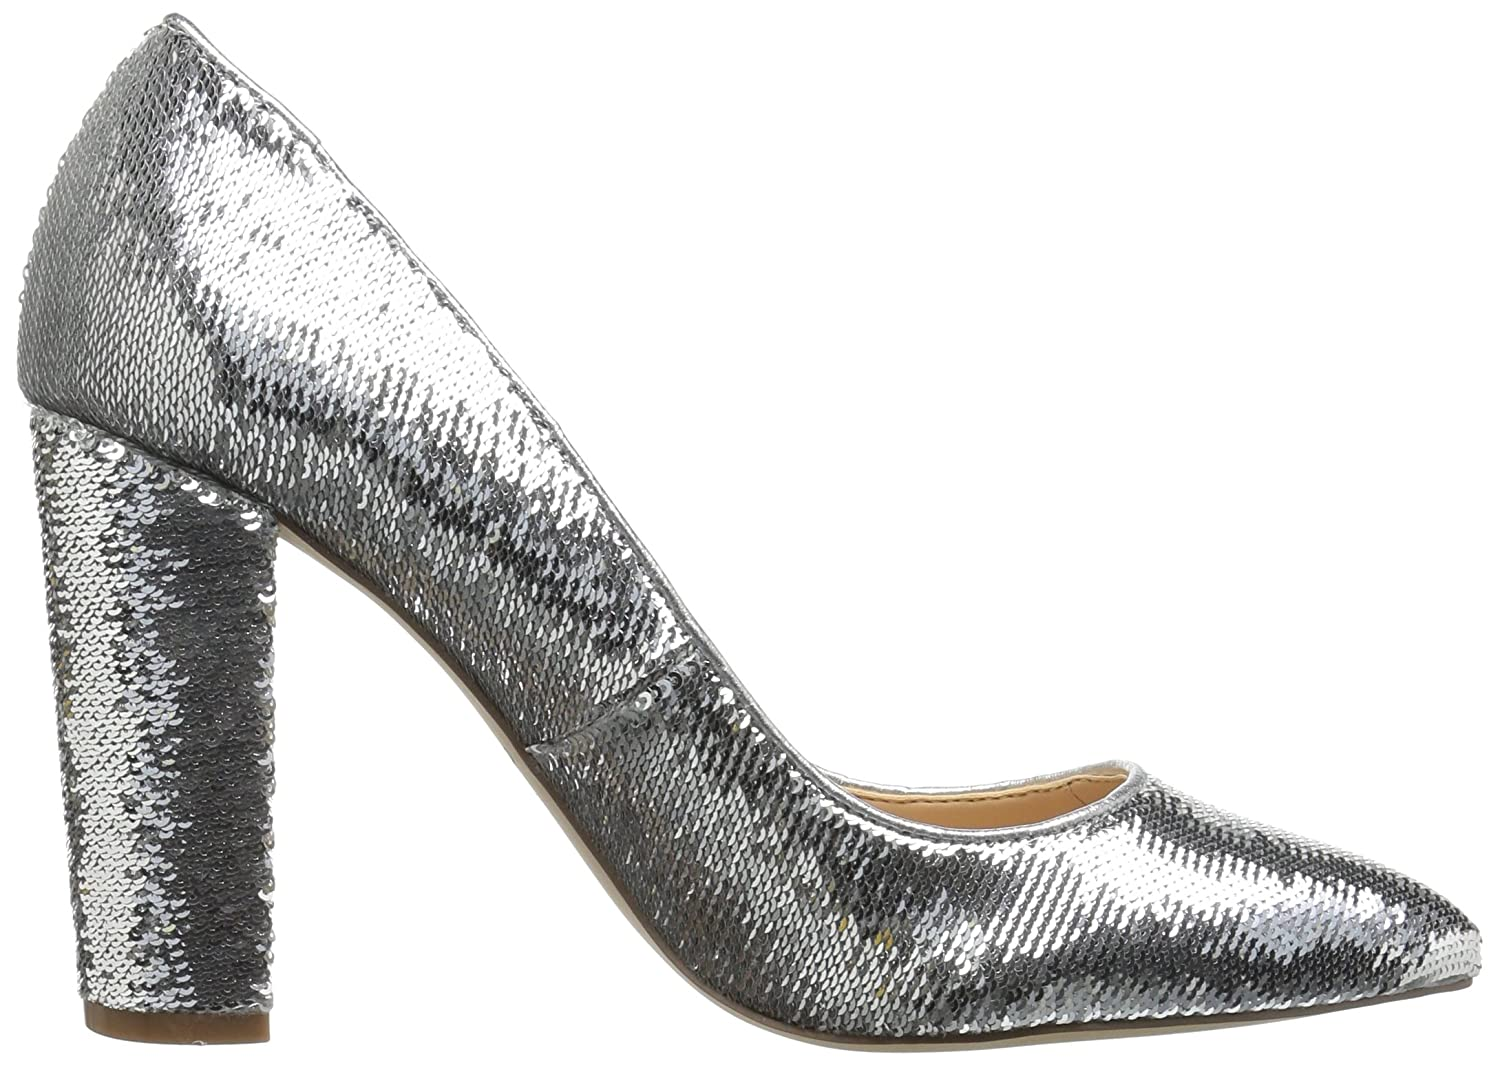 Jewel Badgley Mischka Womens Luxury Pump